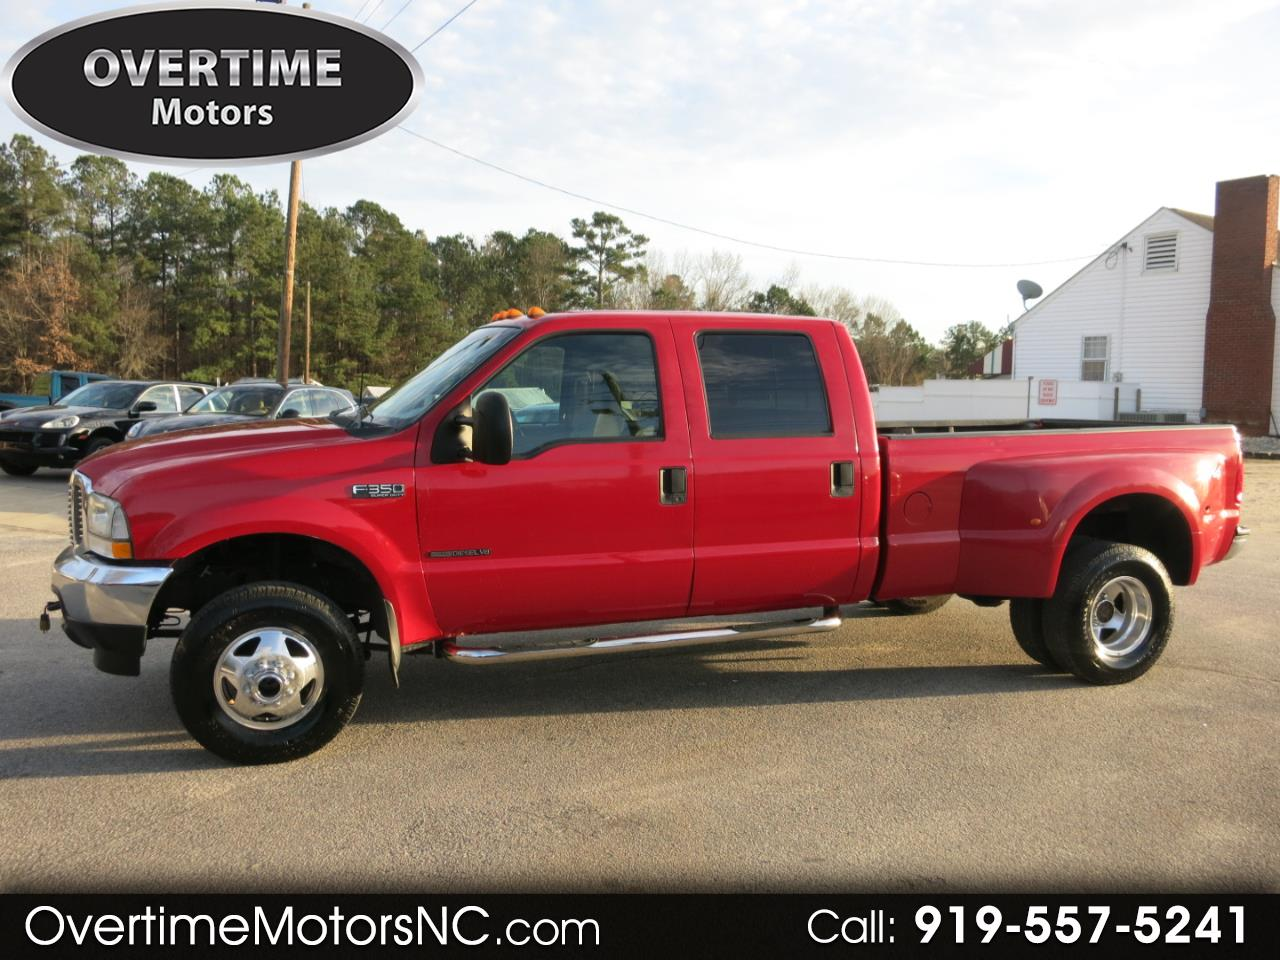 2001 Ford Super Duty F-350 DRW Crew Cab 156